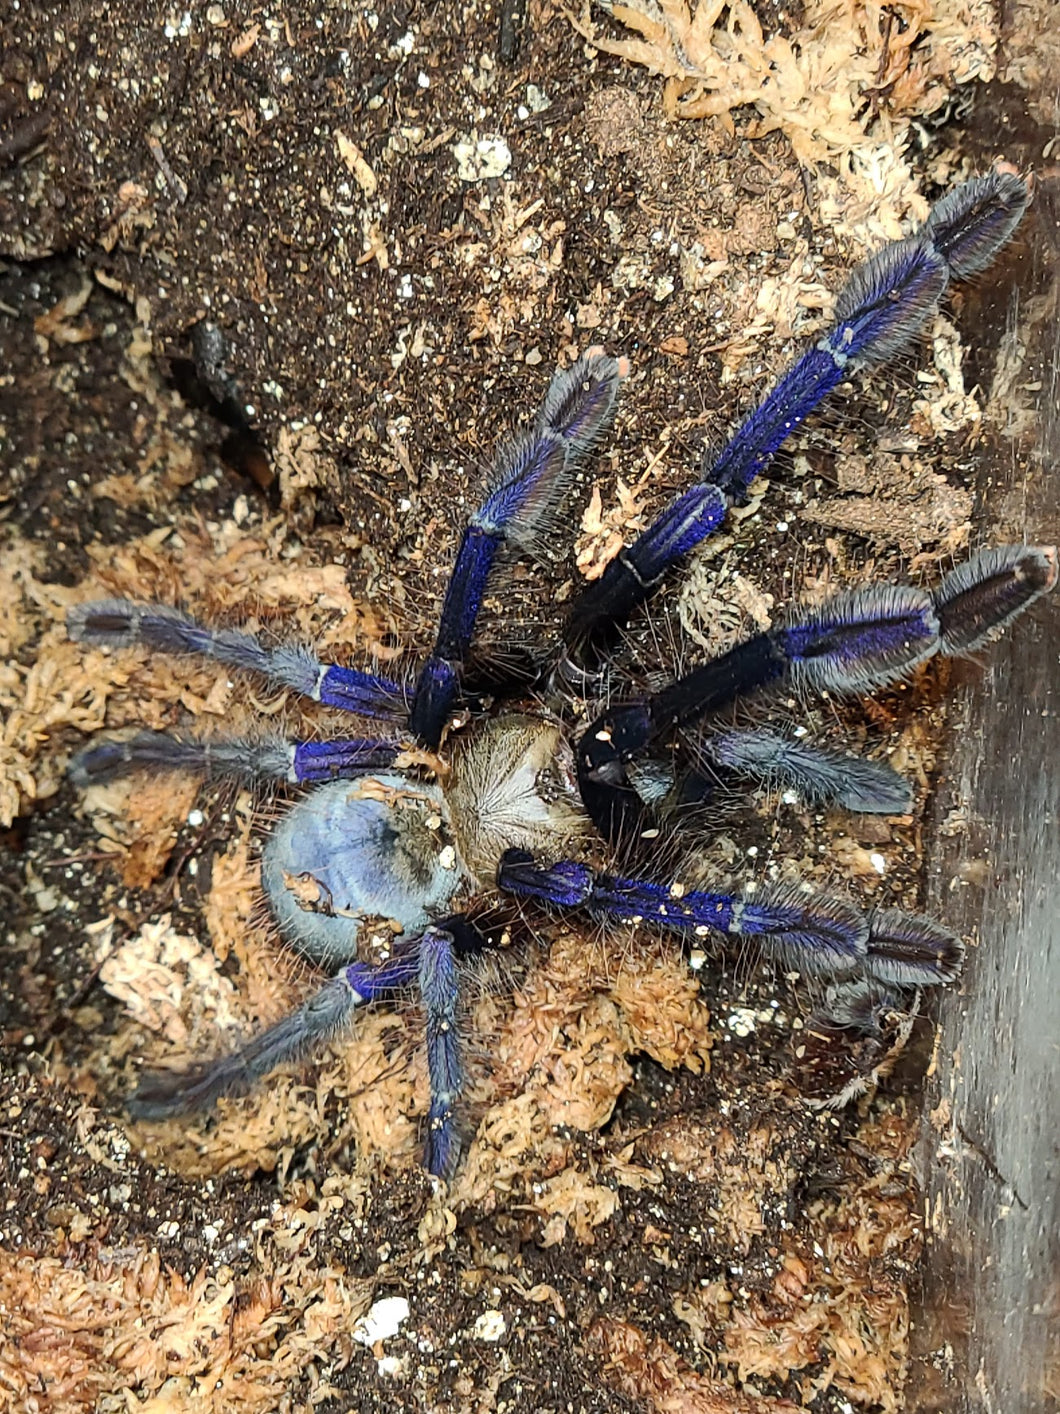 Lampropelma violaceopes (Singapore Blue) 1